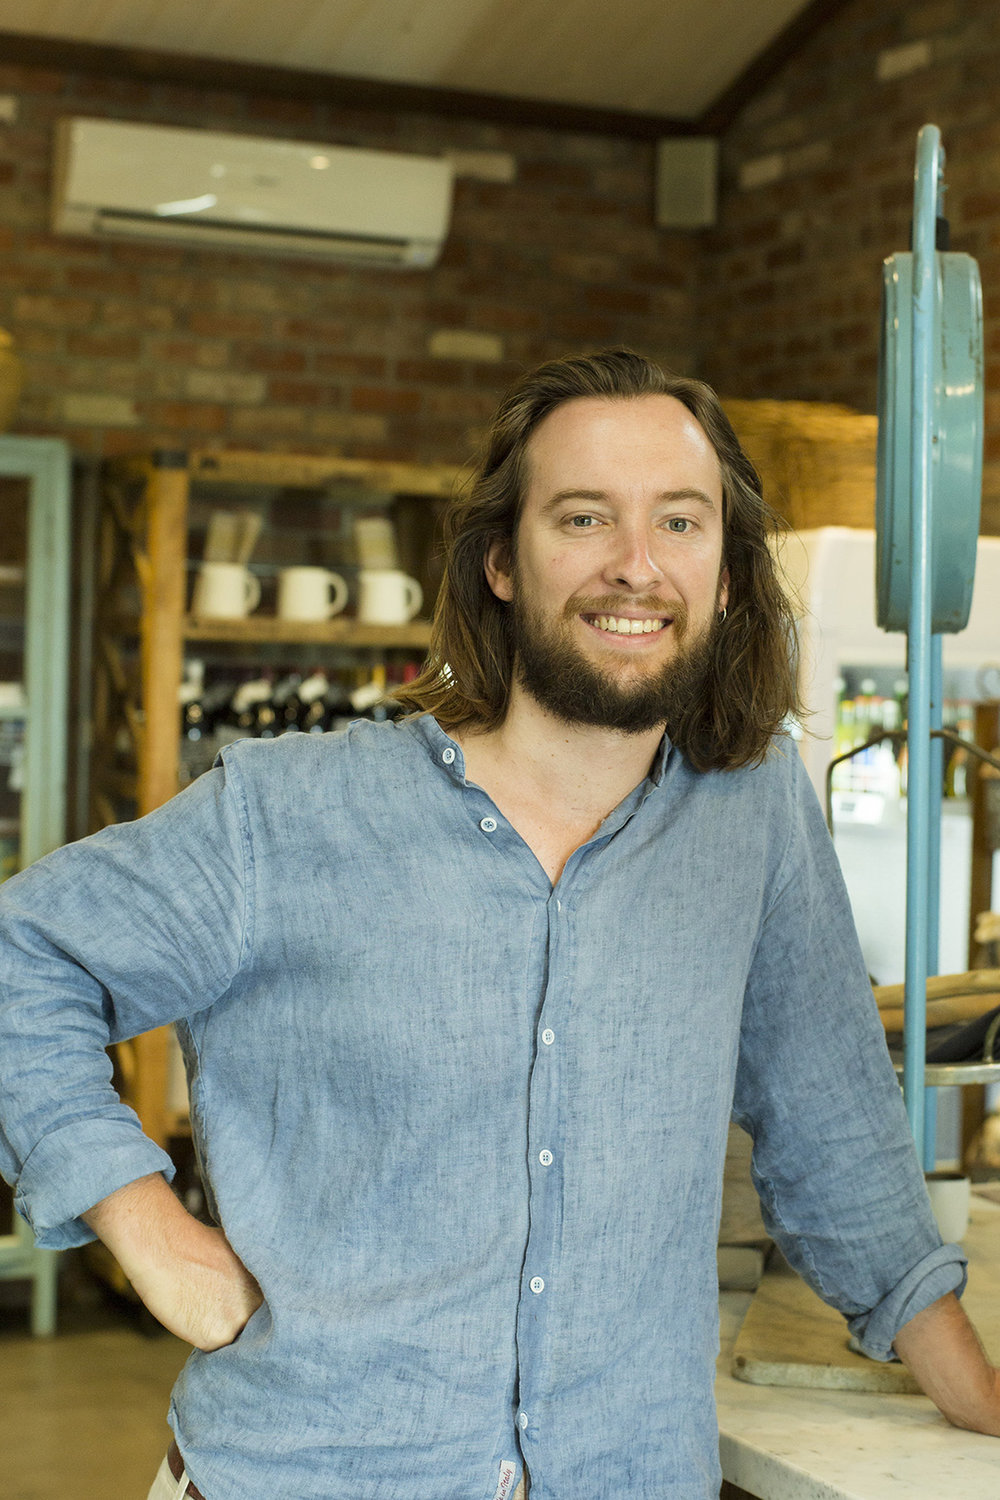 Ryan Frazer   Growing up in the family business that is Stones of the Yarra Valley and Meletos, Ryan has been involved in a variety of ways over the years. From labourer to kitchen hand, barman to graphic designer. Combining a passion for artisan produce and story telling, Ryan, with his Providore family, has sculpted a business/project/destination to be proud of. Curating the food and wine as well as hosting producer events, these subjects are really at the core of The Providore. Produced out of The Providore for both Meletos and Stones,  Seasoned  is an in-house quarterly guide, profiling local producer, staff across the property and feature recipes by our chefs. The broadsheet is the passion project of Ryan's and a lovely collaboration with his brother Benny.